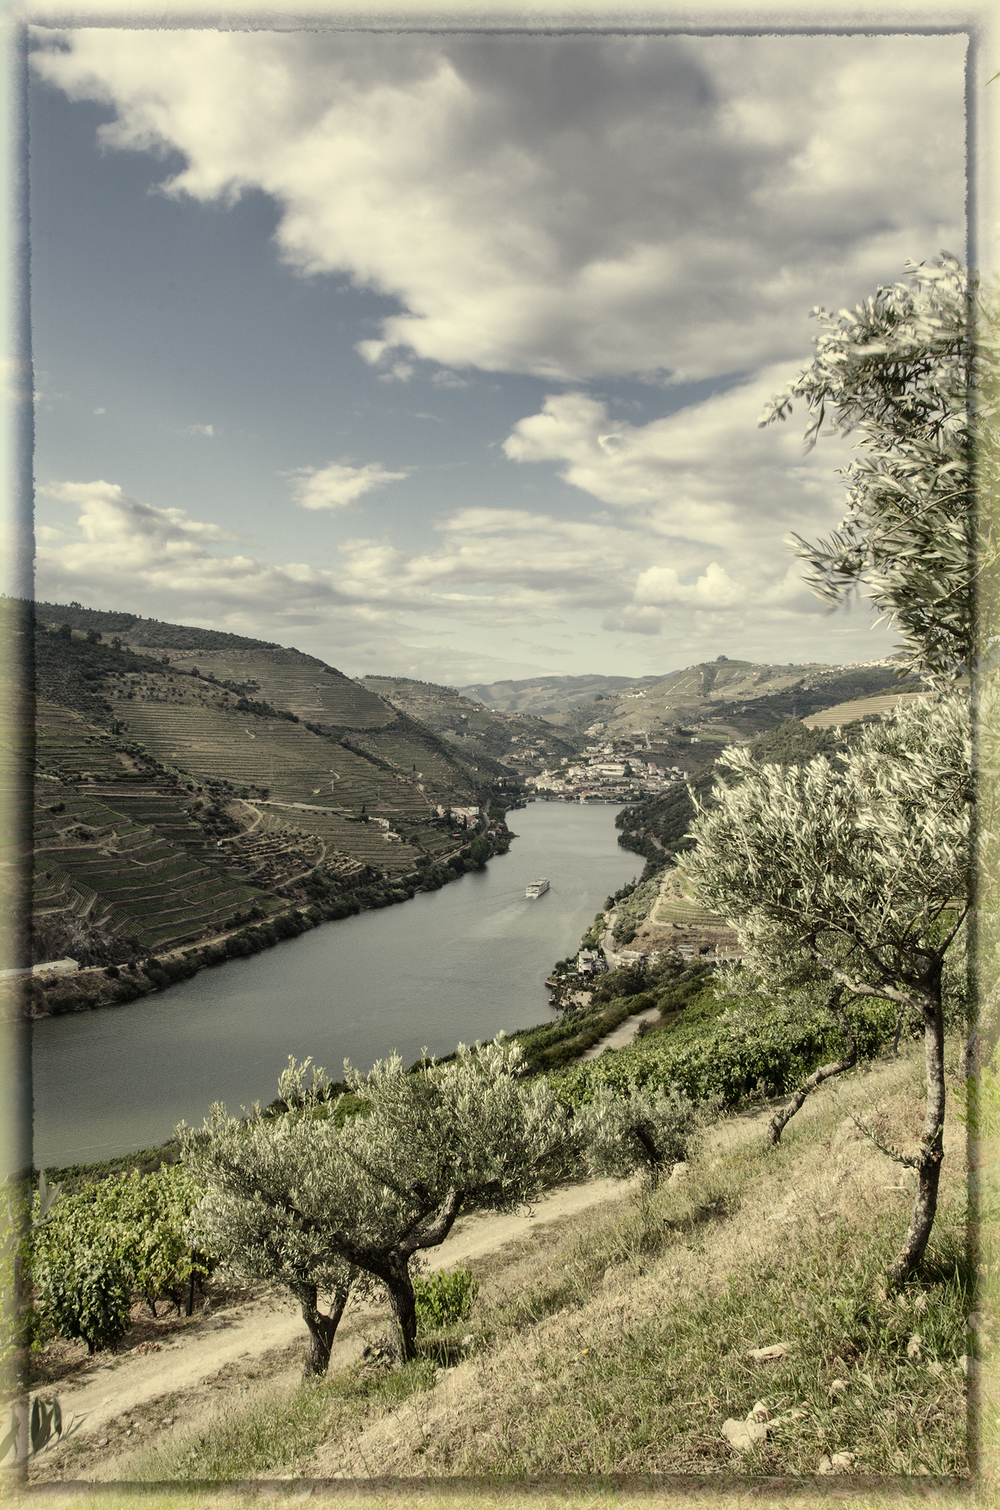 Vineyards above the Douro River